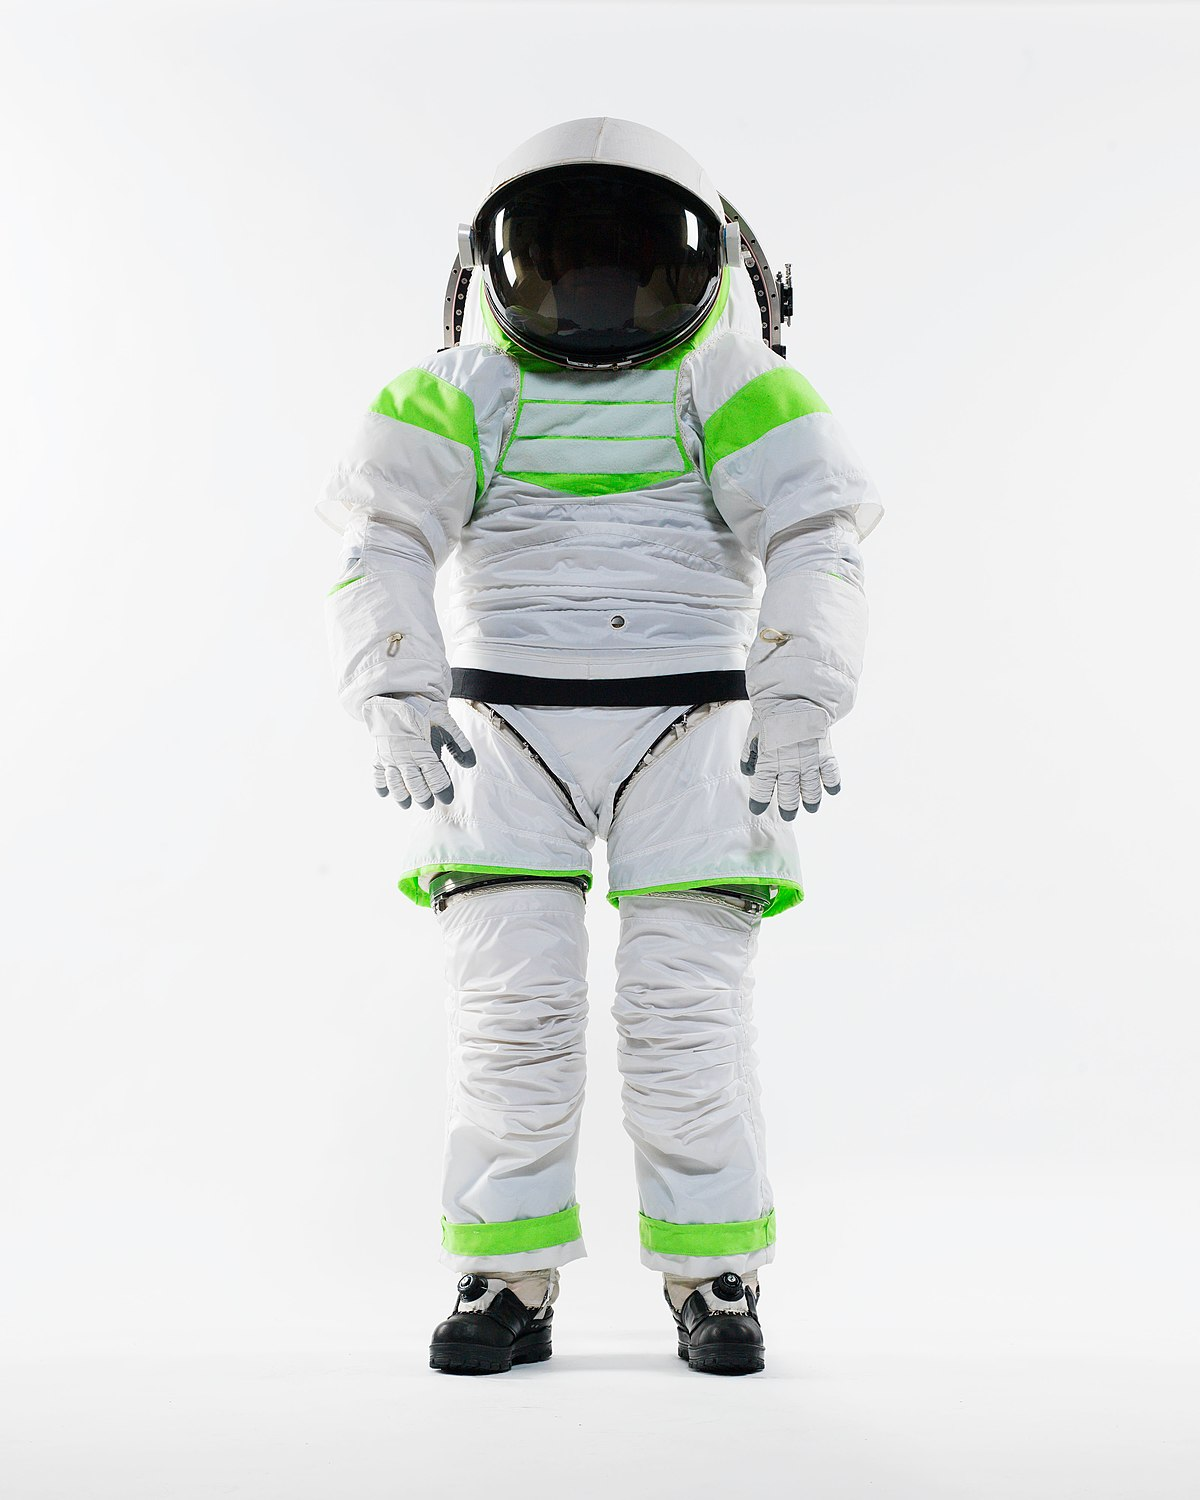 astronaut space suit - photo #29